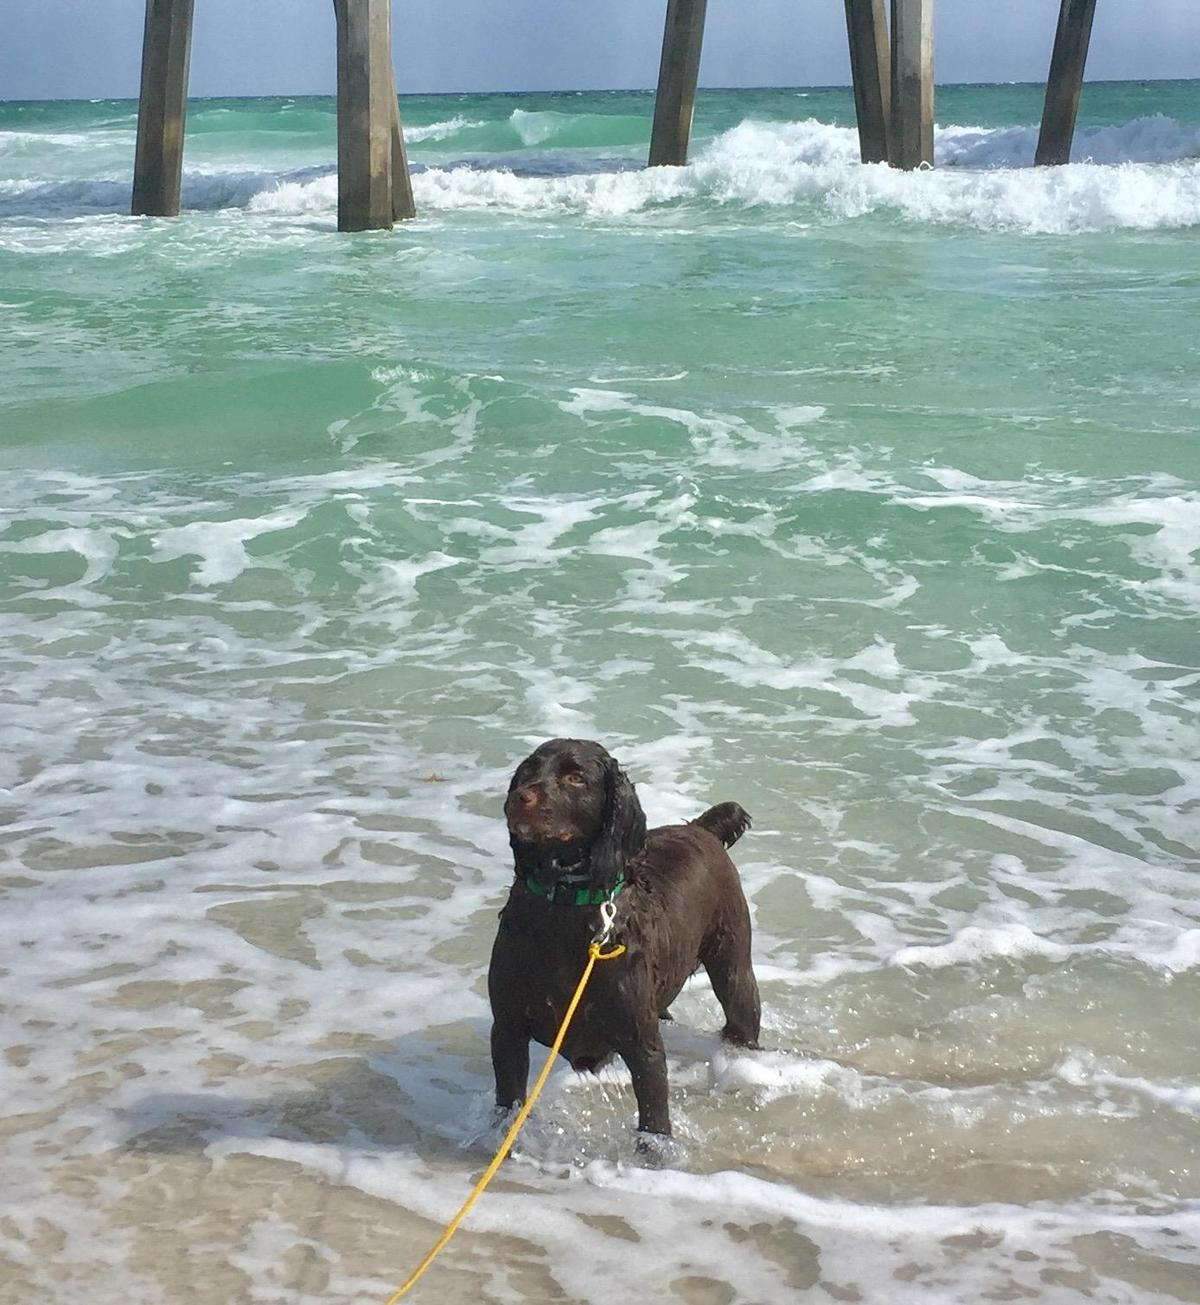 Augie at the beach